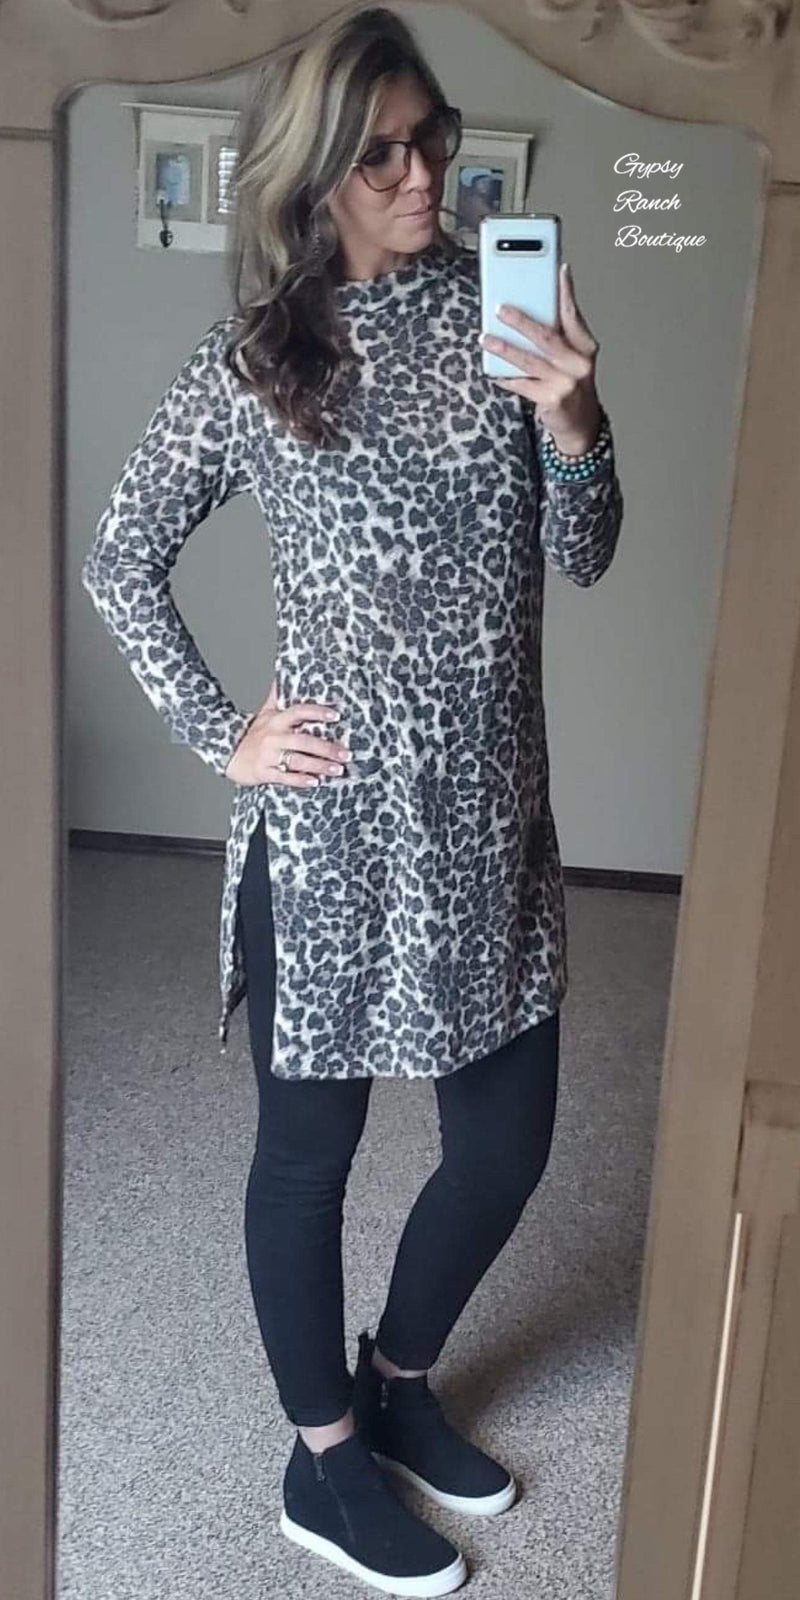 Tamara Leopard Tunic Top